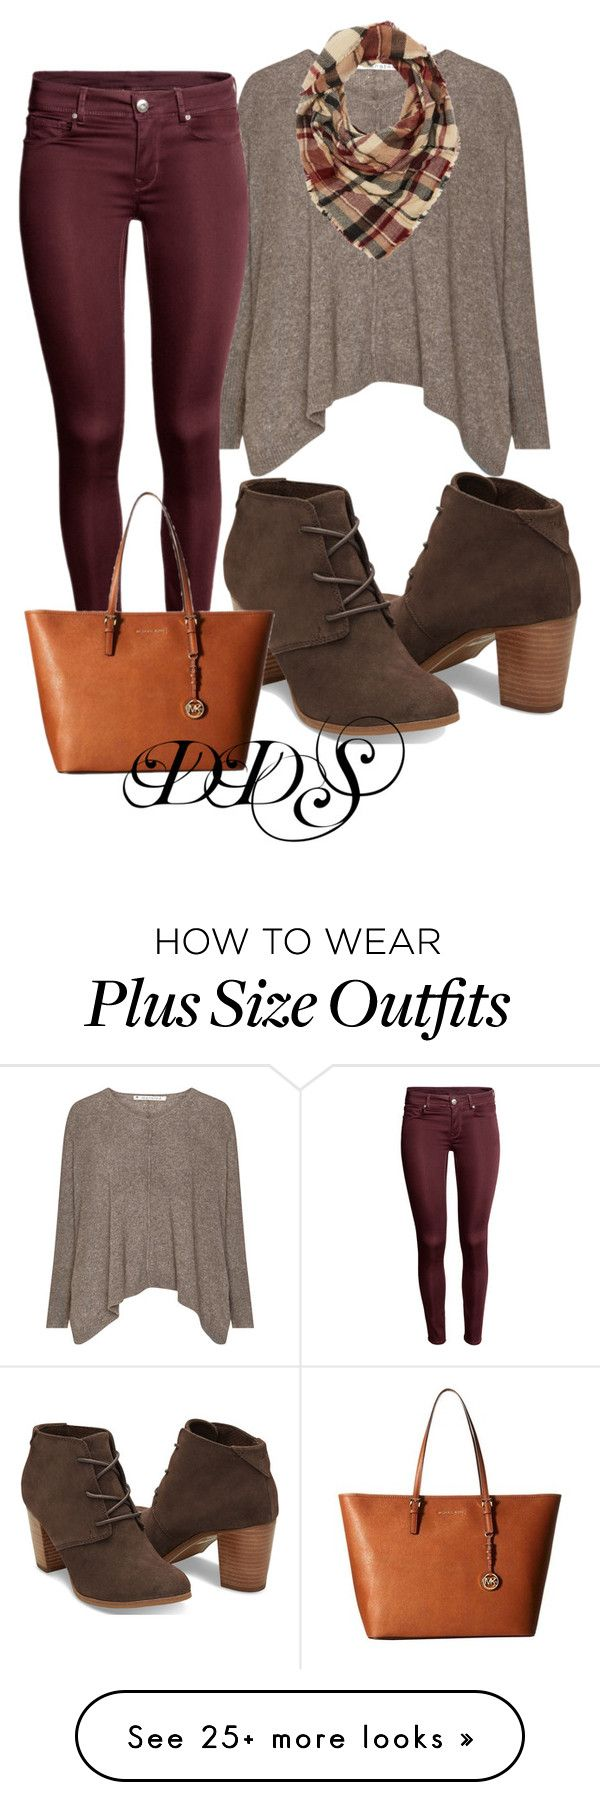 """Giving Thanks"" by donna-duggan-sargeant on Polyvore featuring Charlotte Russe and MICHAEL Michael Kors"